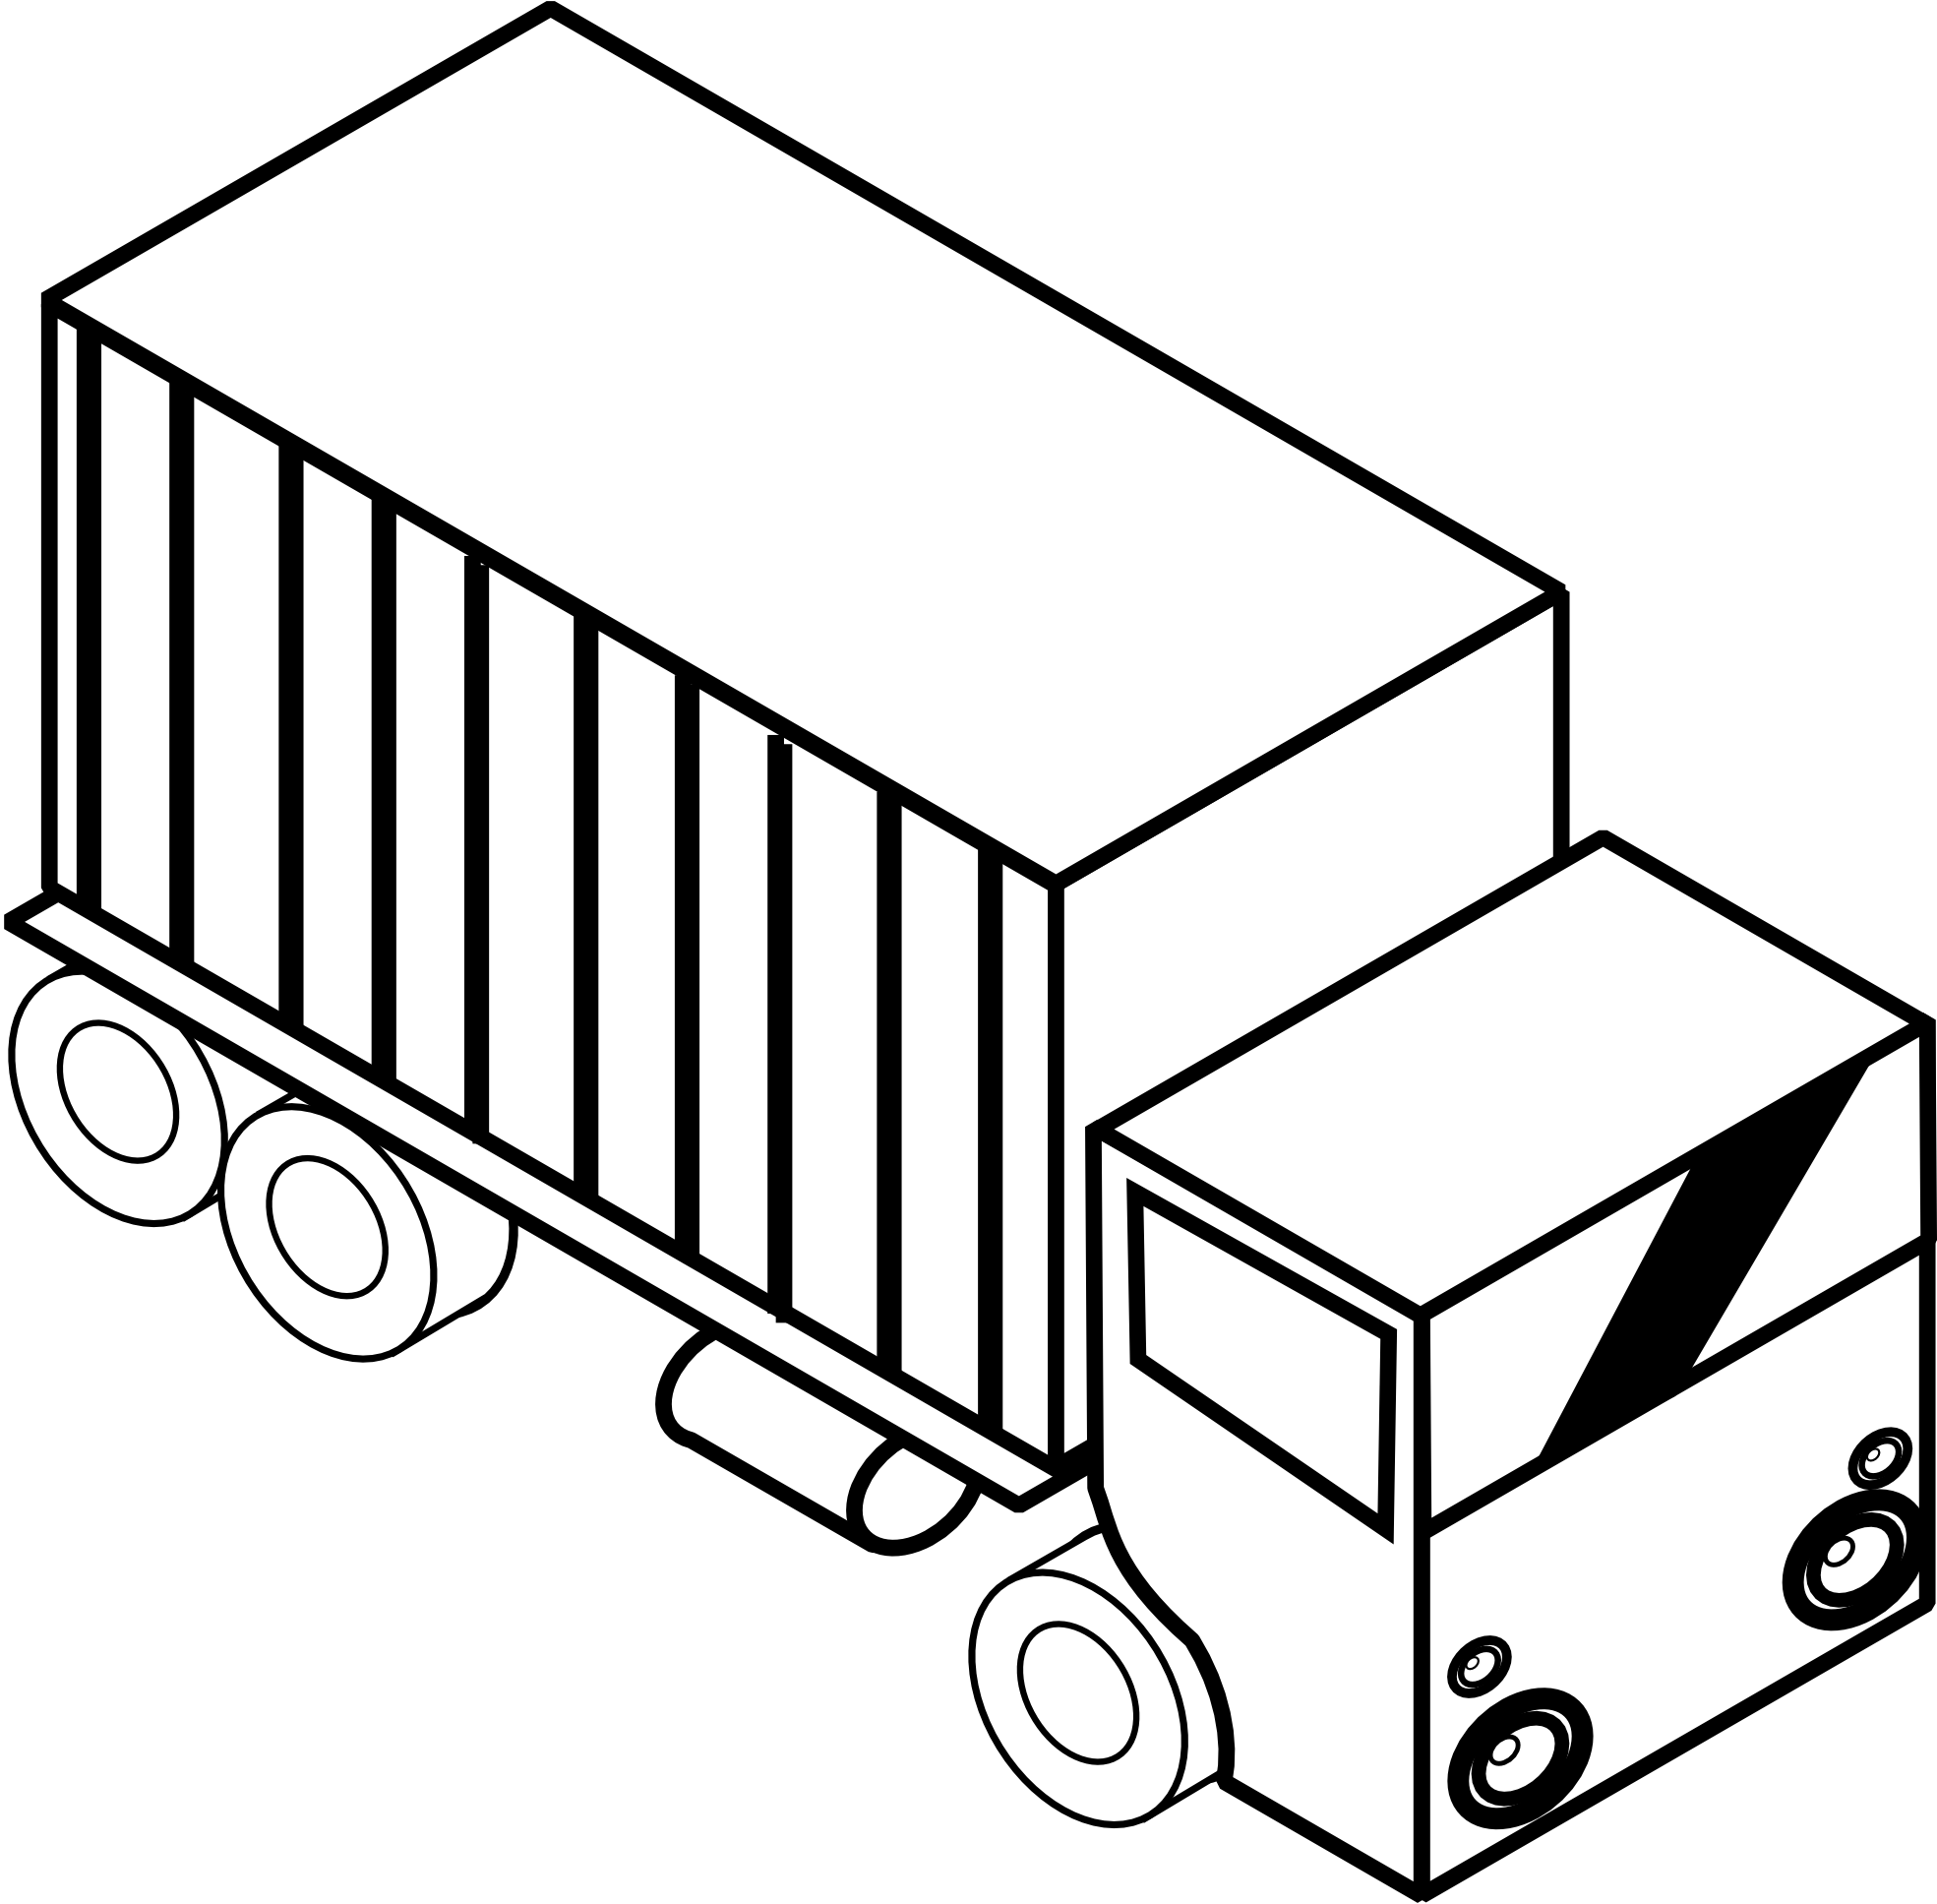 Truck  black and white truck clipart black and white free images